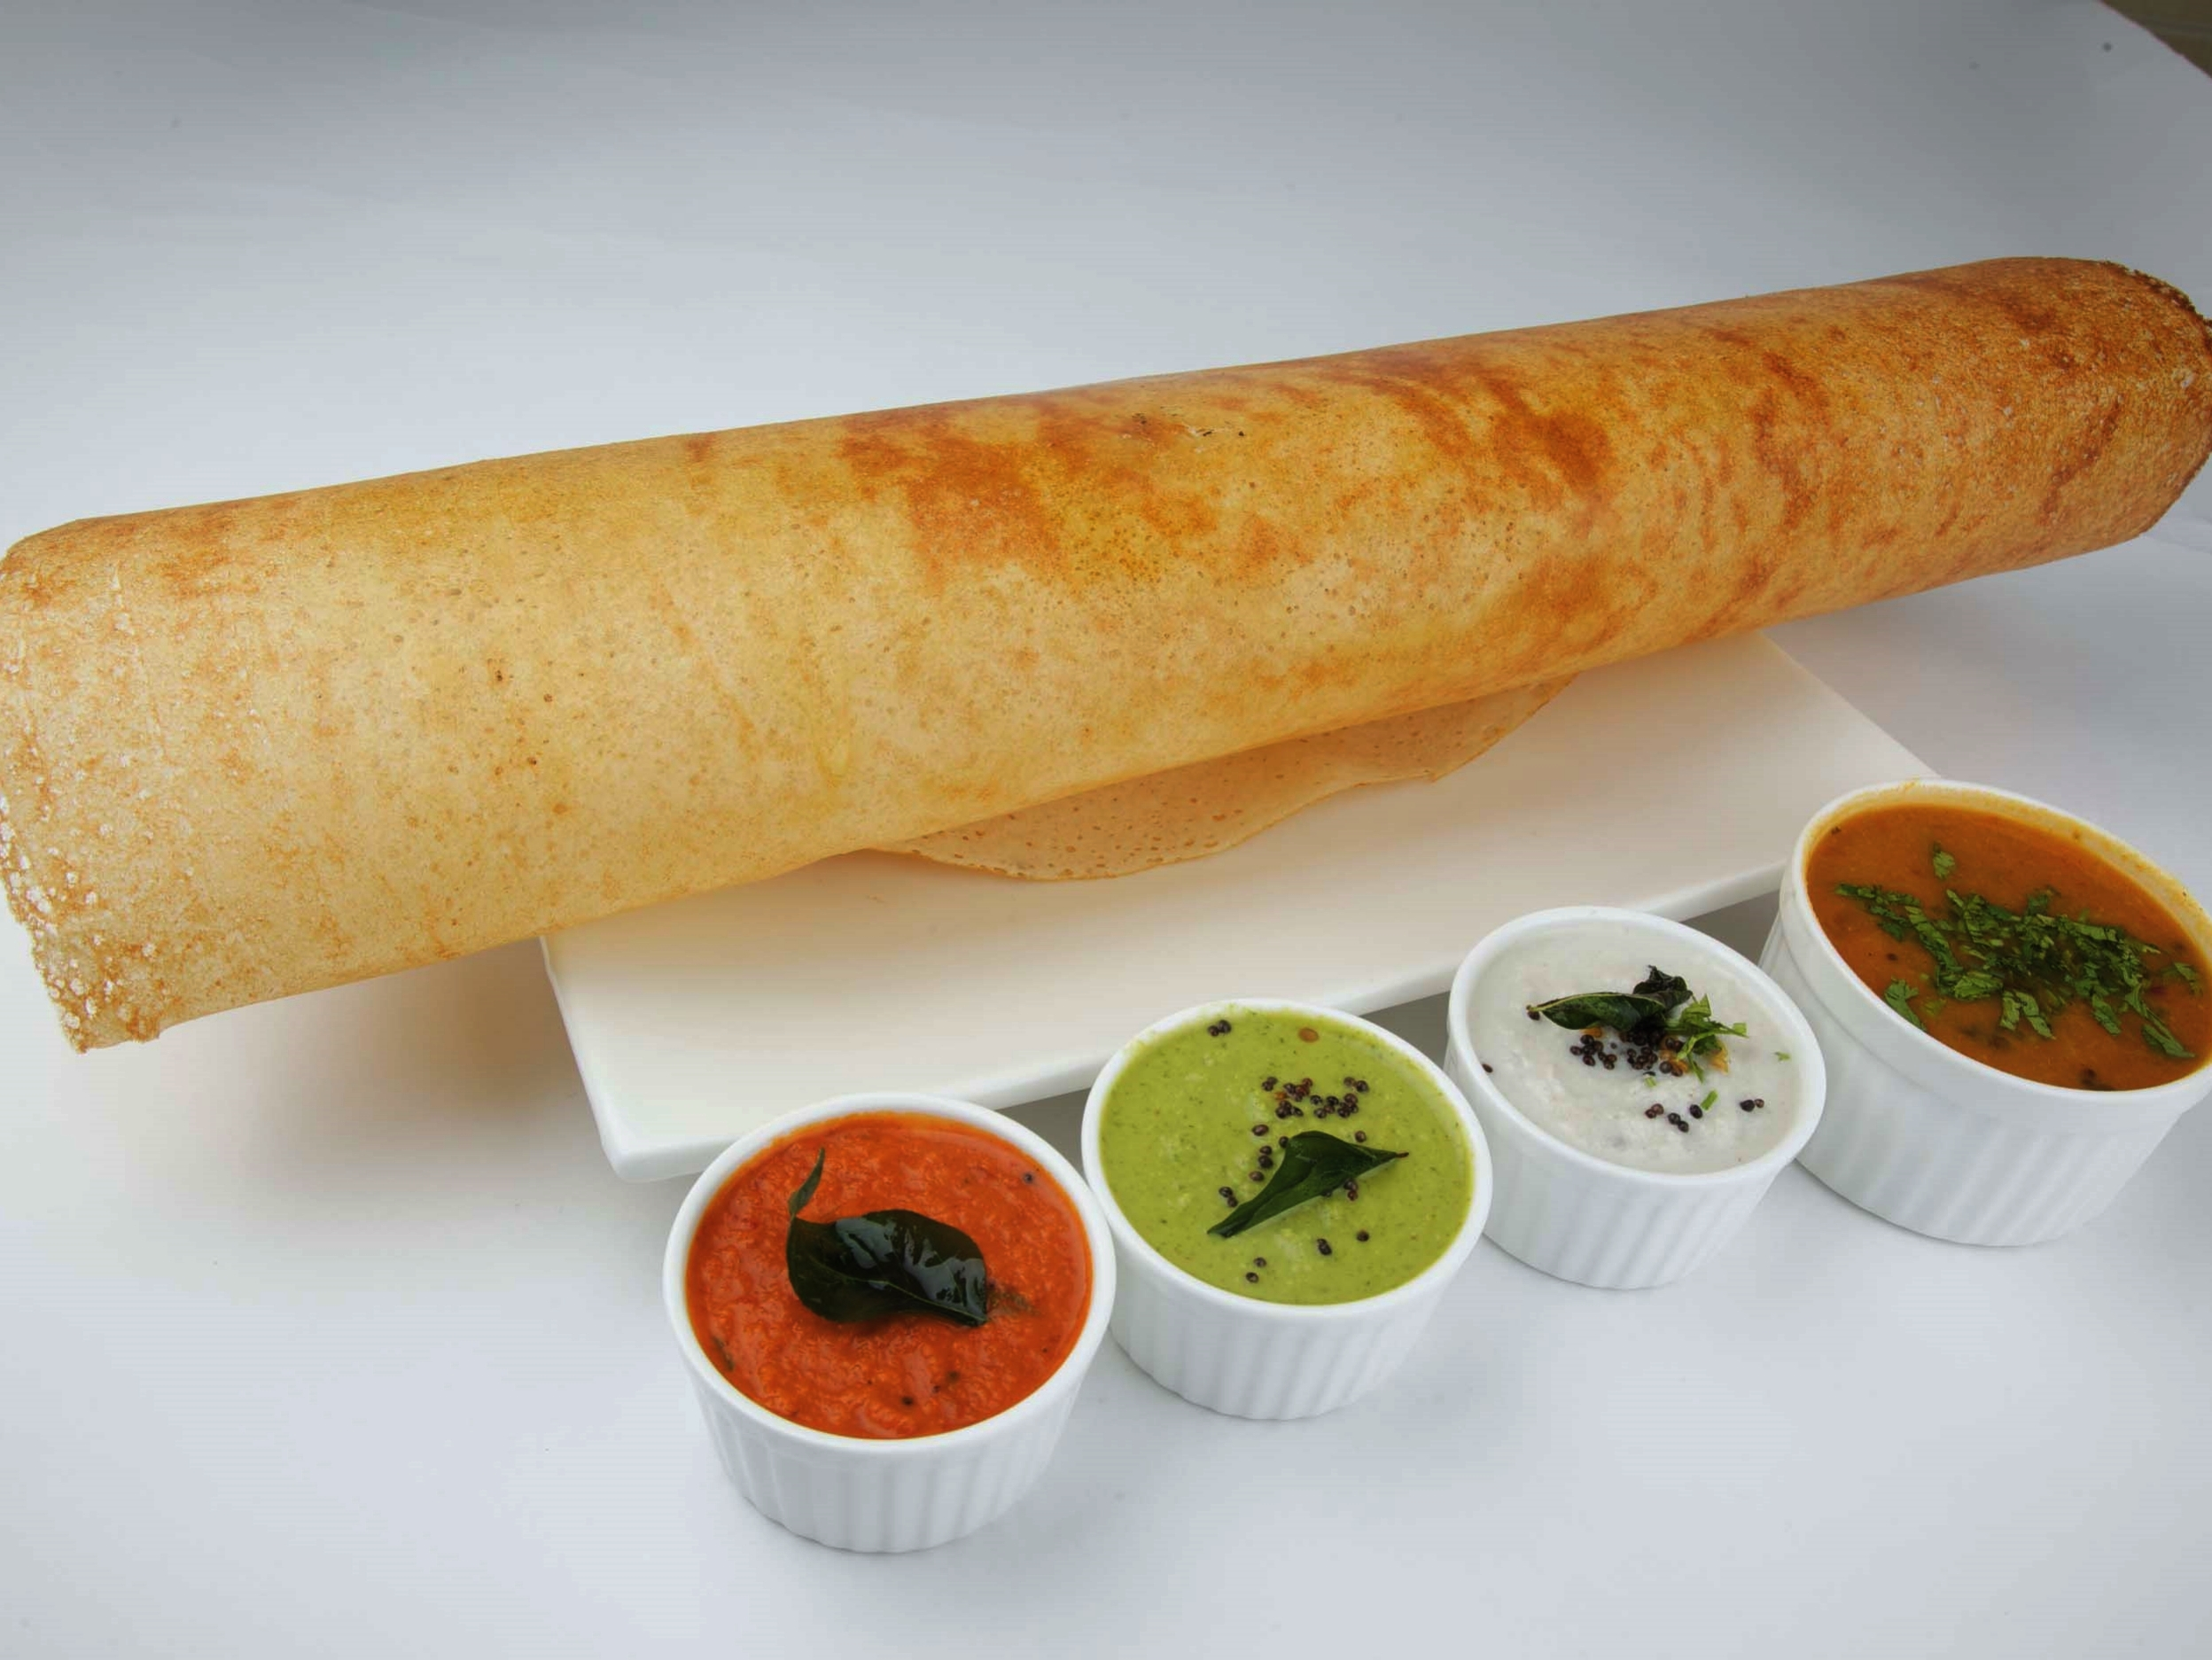 a dosa on a plate with sambar and chutneys in serving bowls